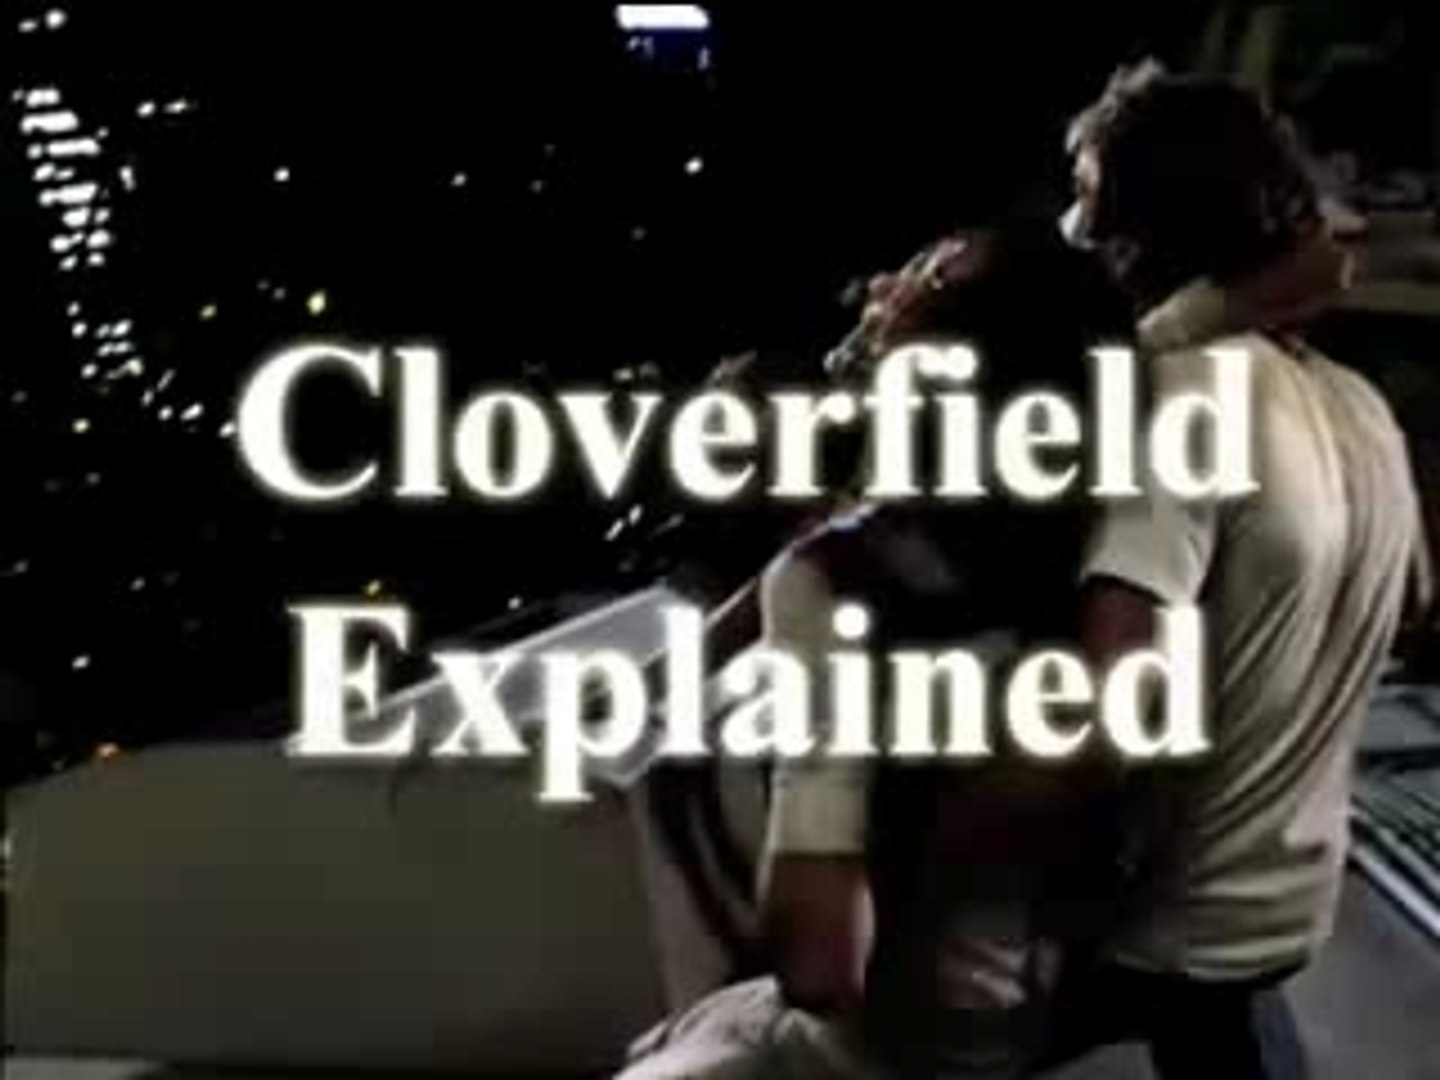 Cloverfield Ending Credits Spoilers